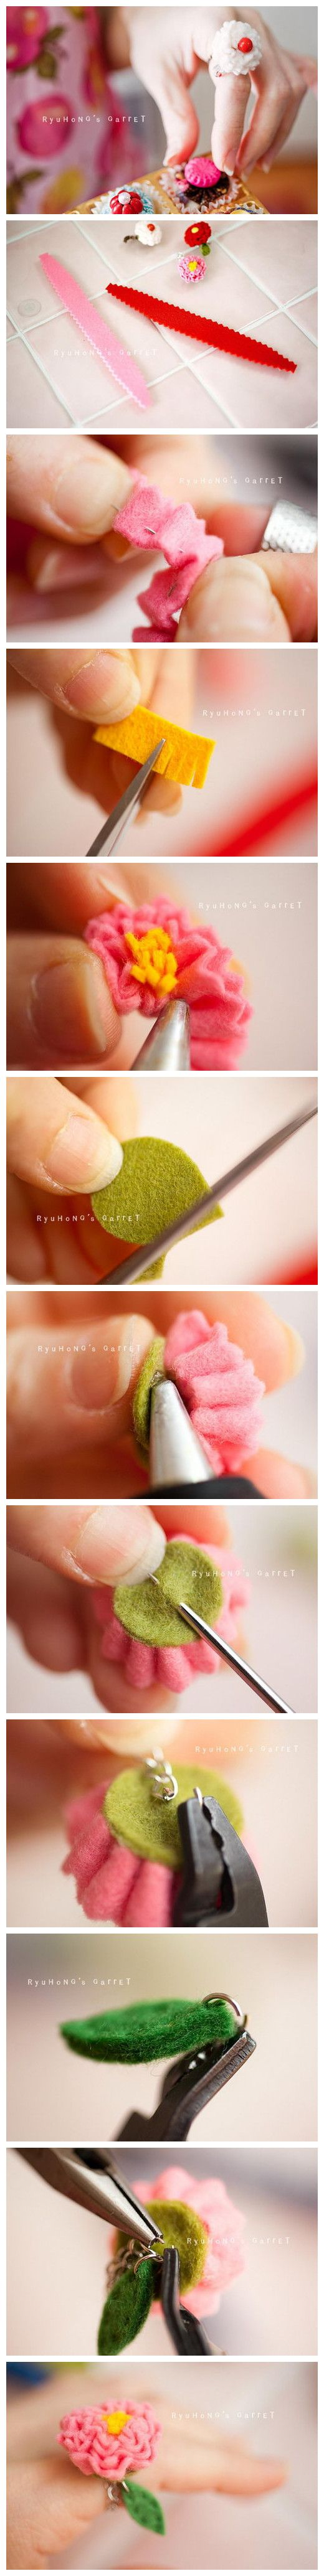 Small flowers for crafts - Find This Pin And More On Craft Flowers